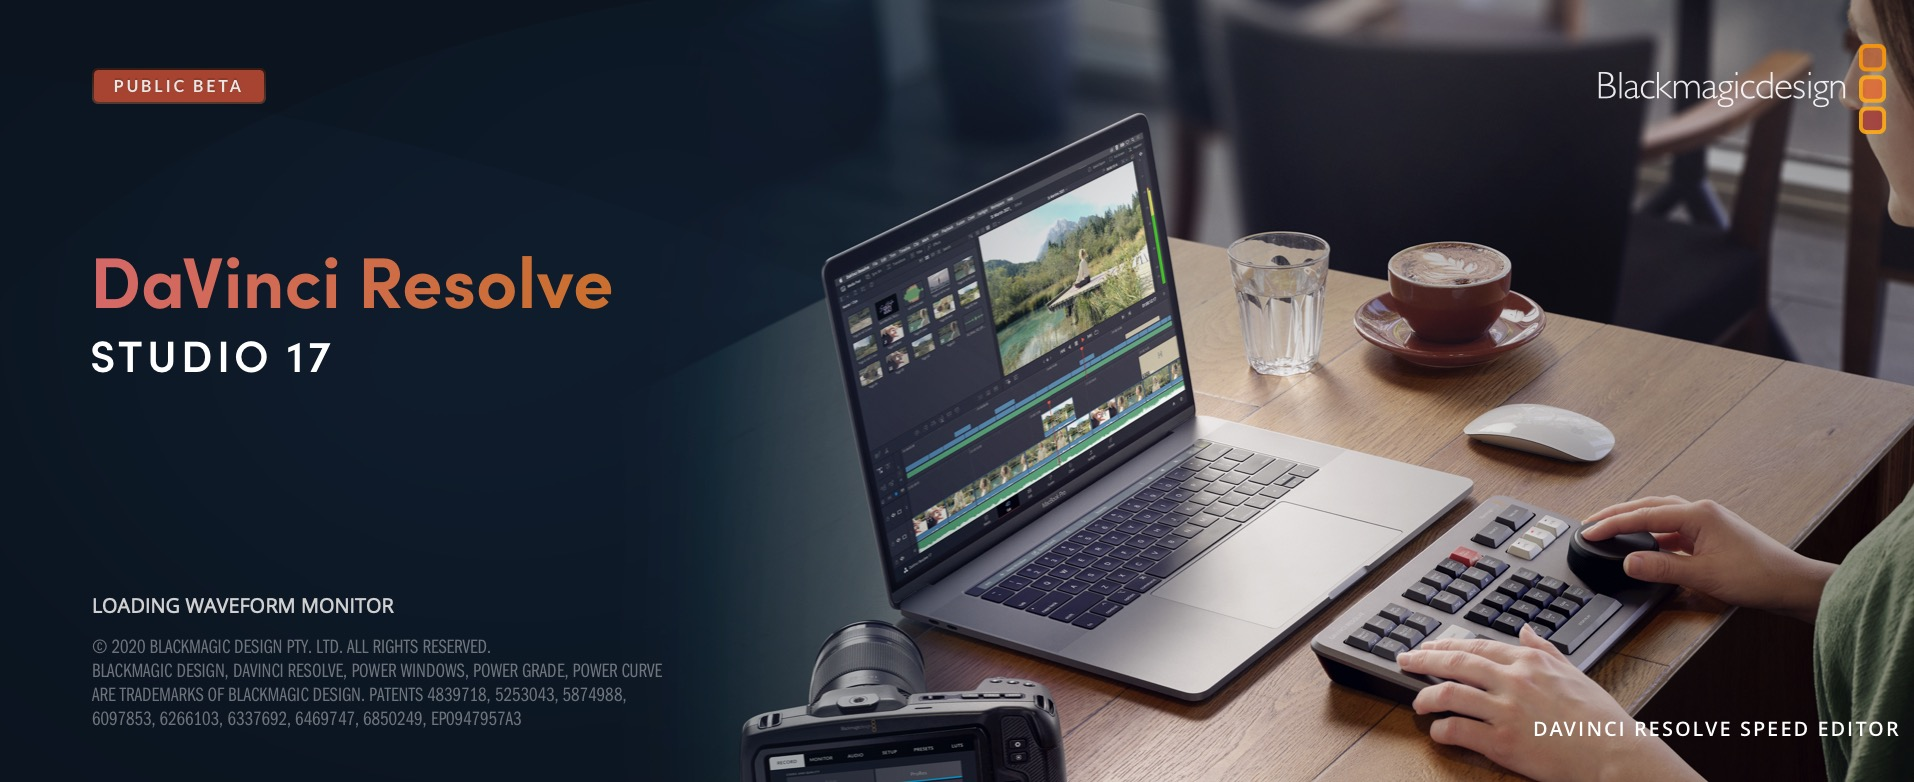 DaVinci Resolve Speed Editor splash screen